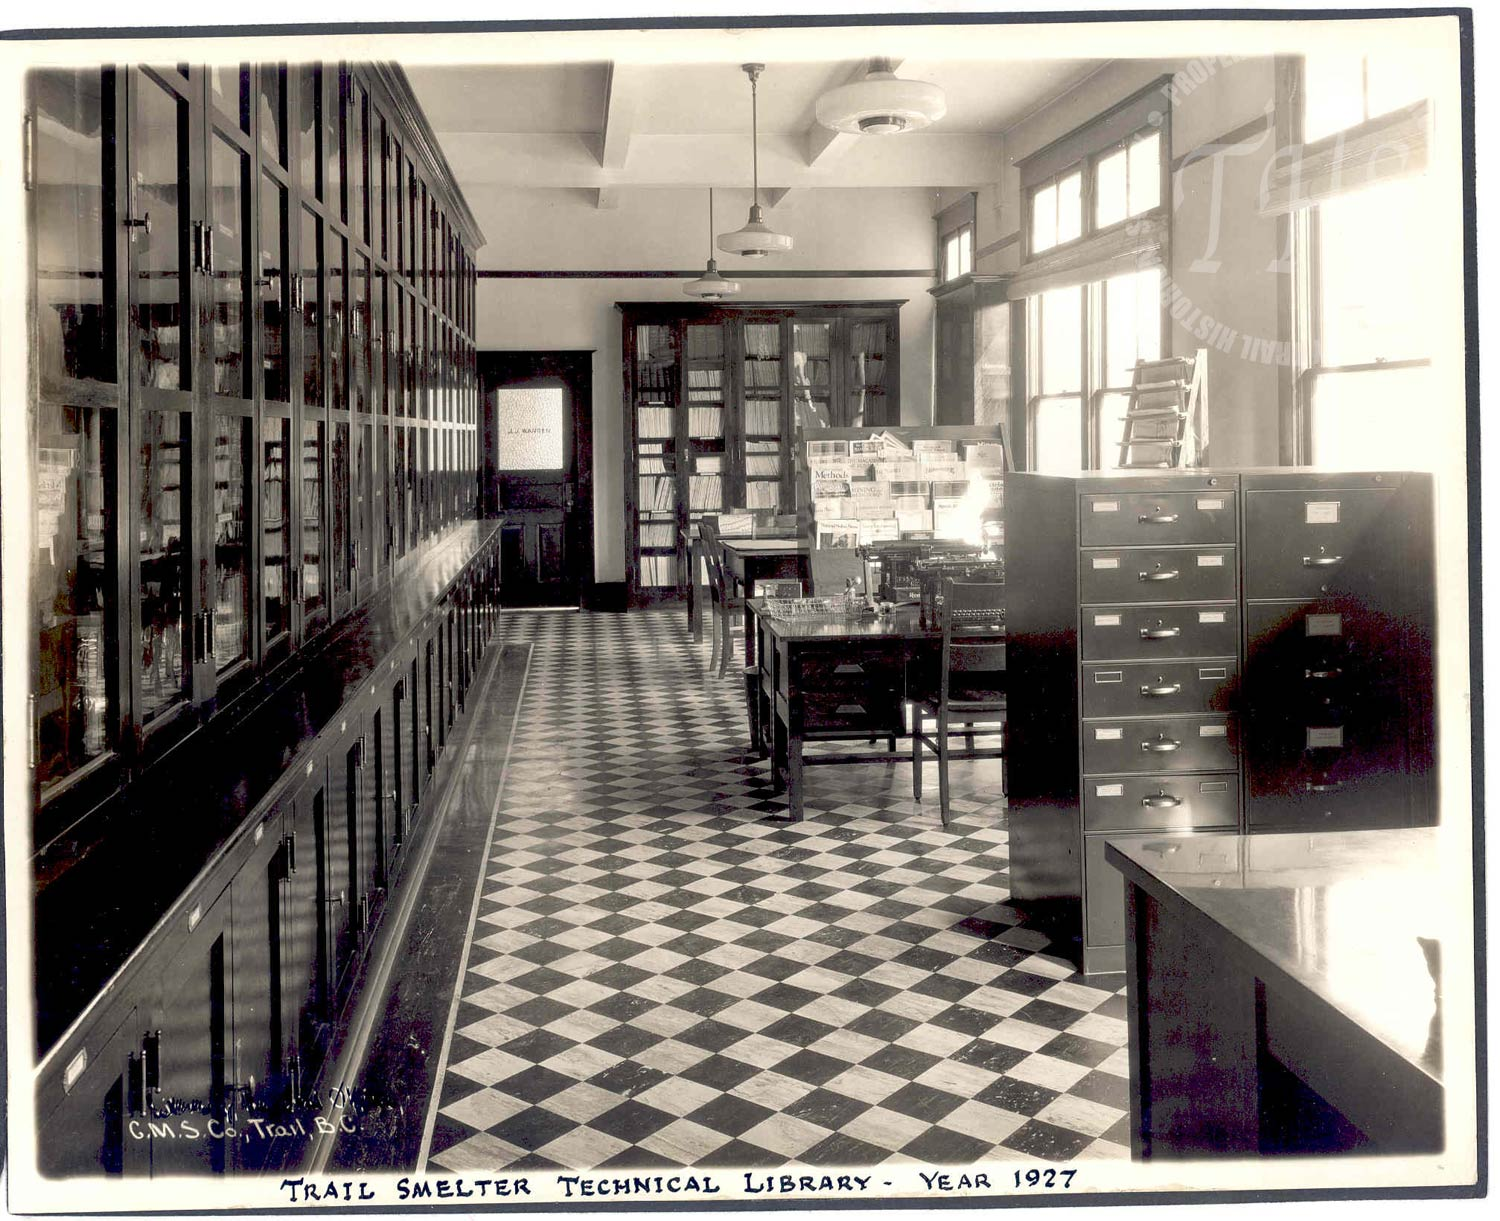 Trail Smelter Technical Library (Hughes) - 1927